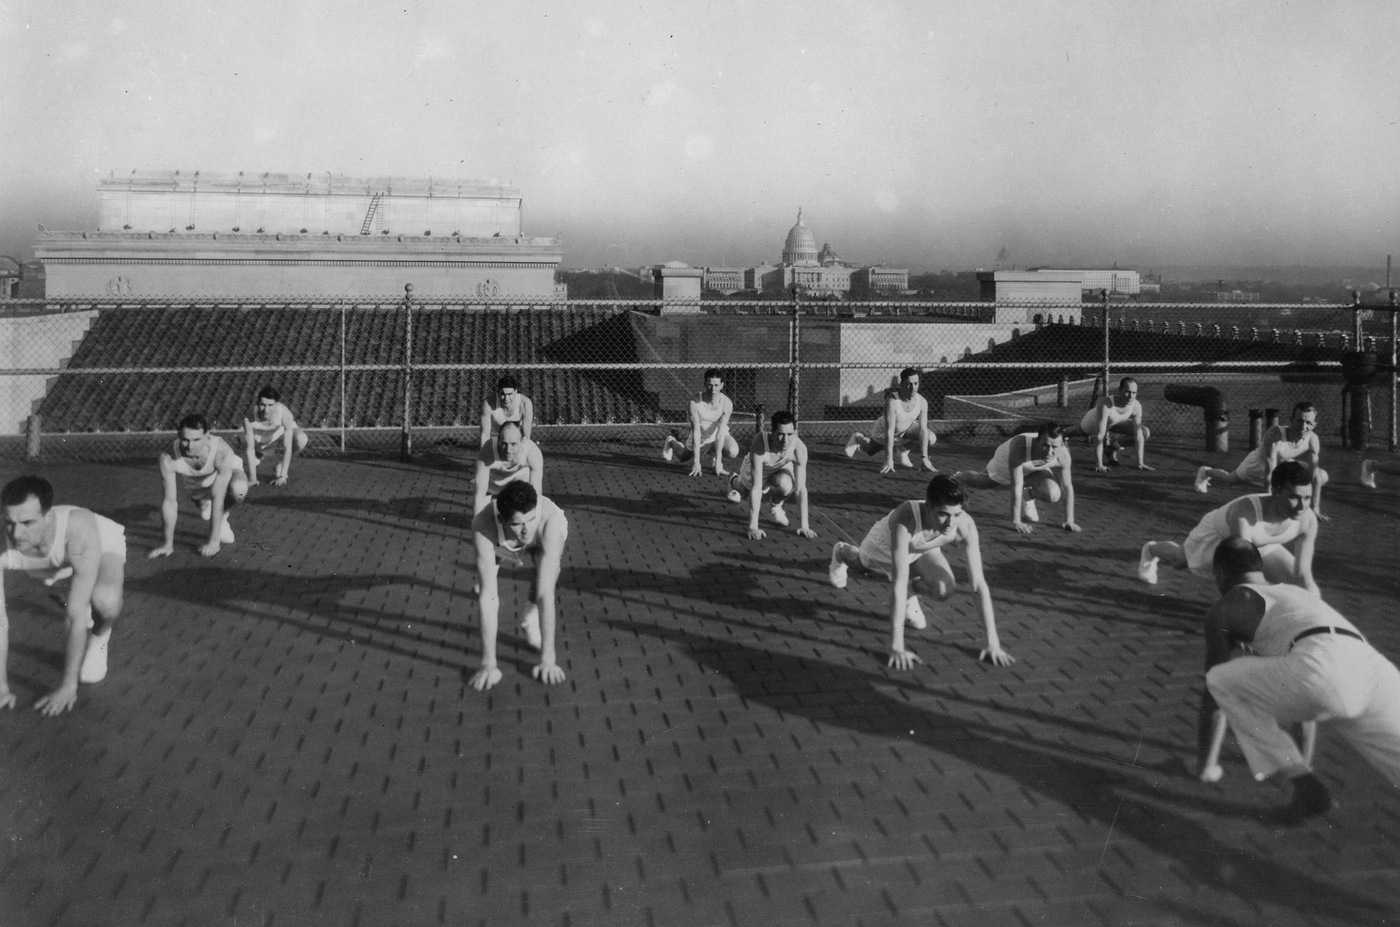 New agents train on the rooftop of the former FBI Headquarters building in Washington, D.C. in the 1930s. Today, the FBI trains new agents and partners alike on its campus in Quantico, Virginia.